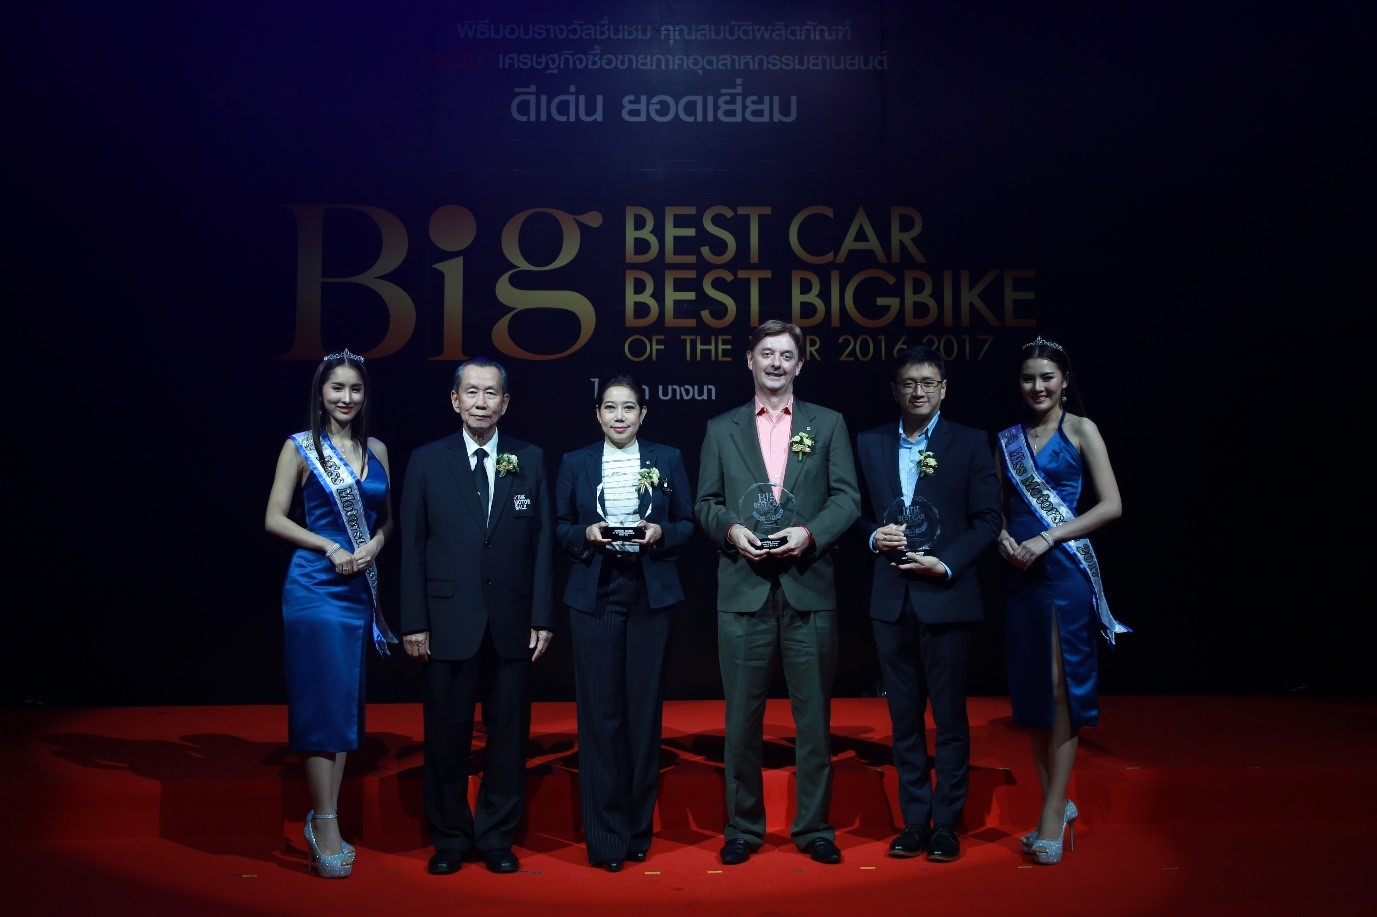 More Awards for Nissan Vehicles in Thailand